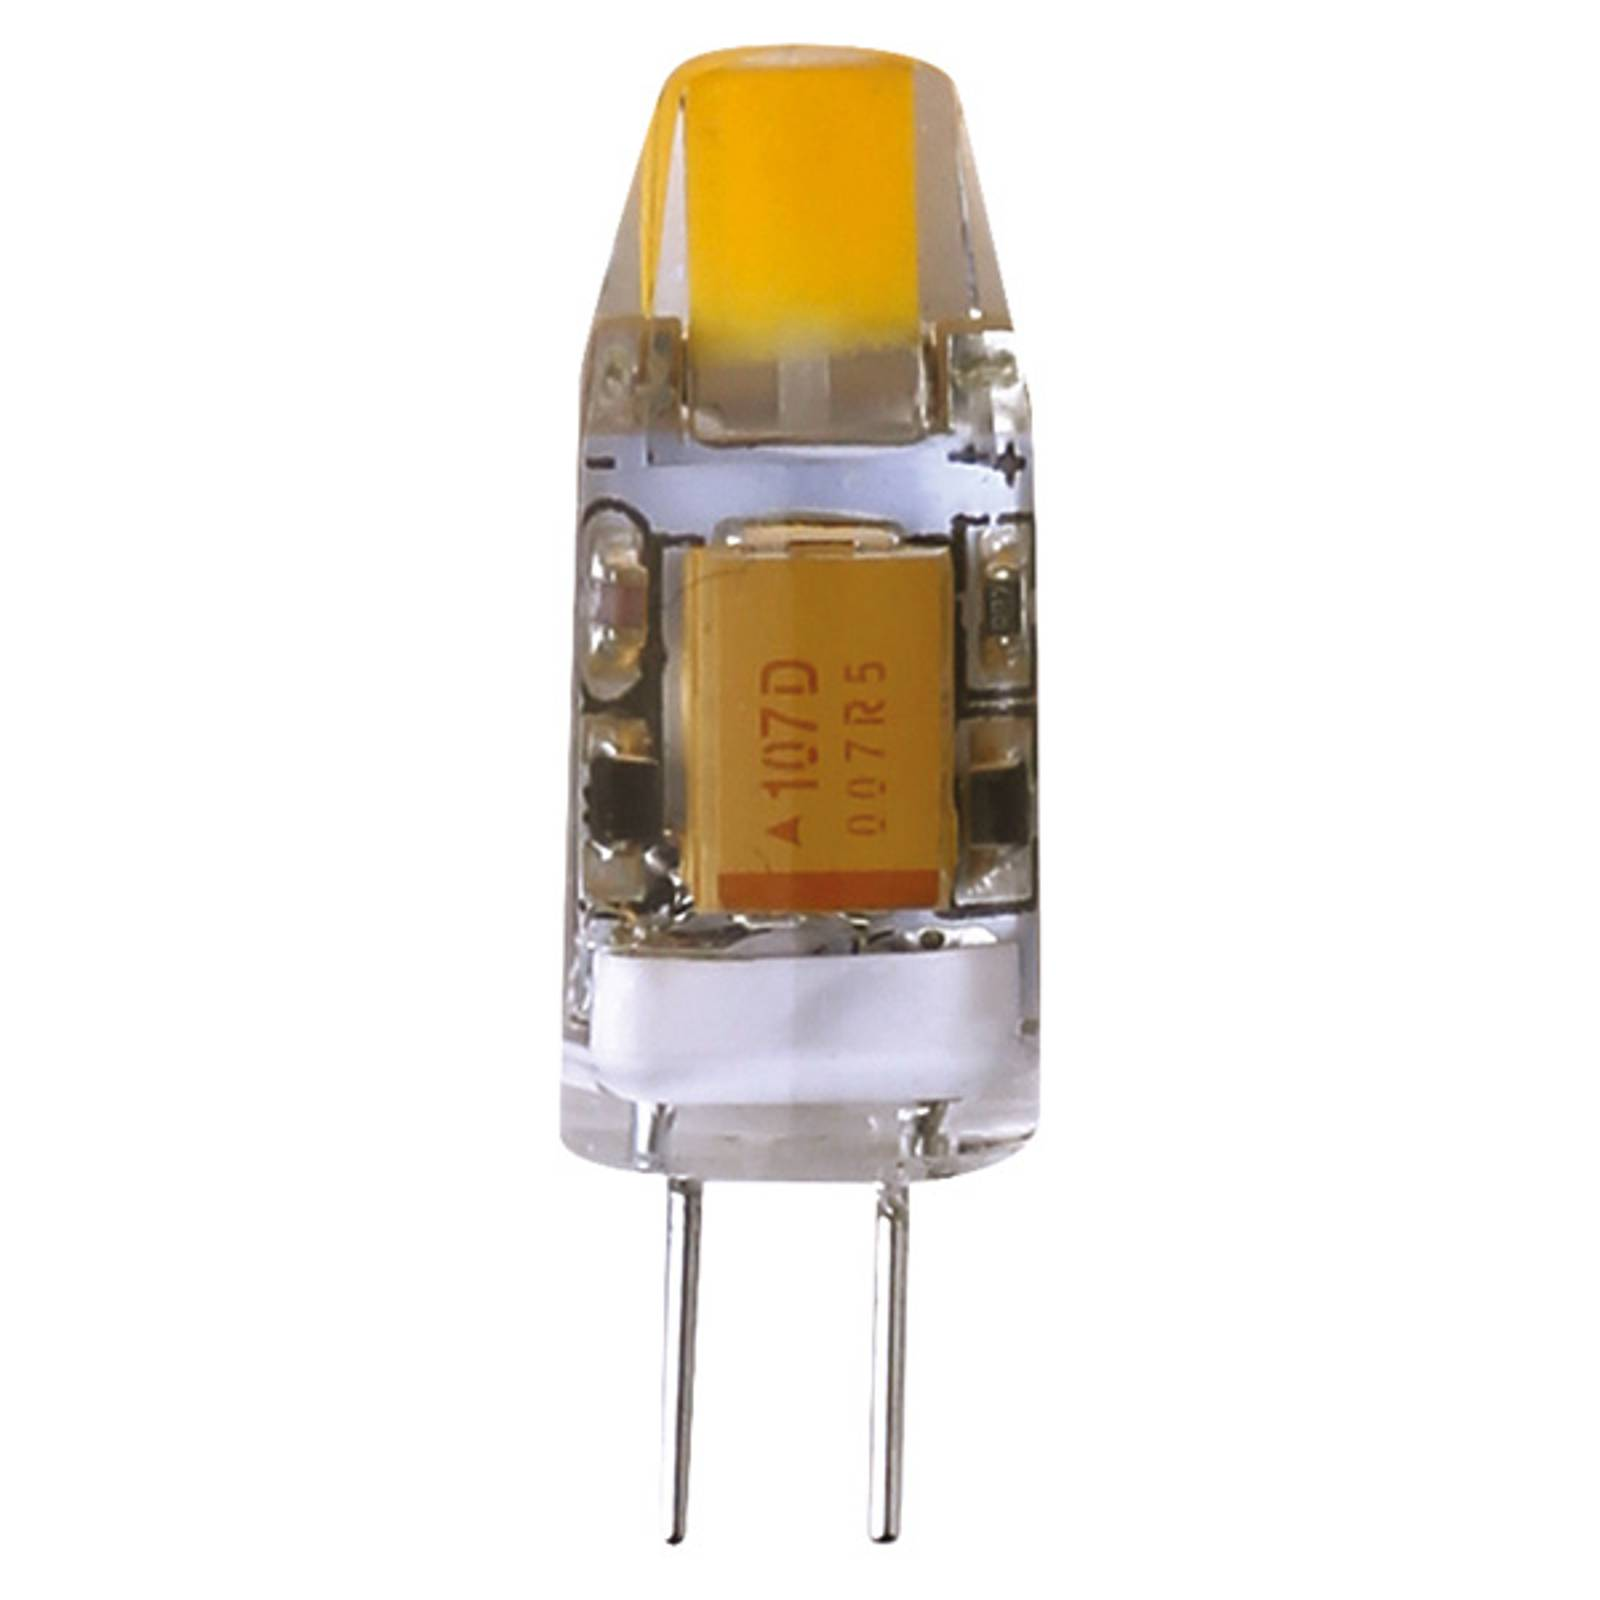 G4 1.2W 828 LED bi-pin bulb from Megaman